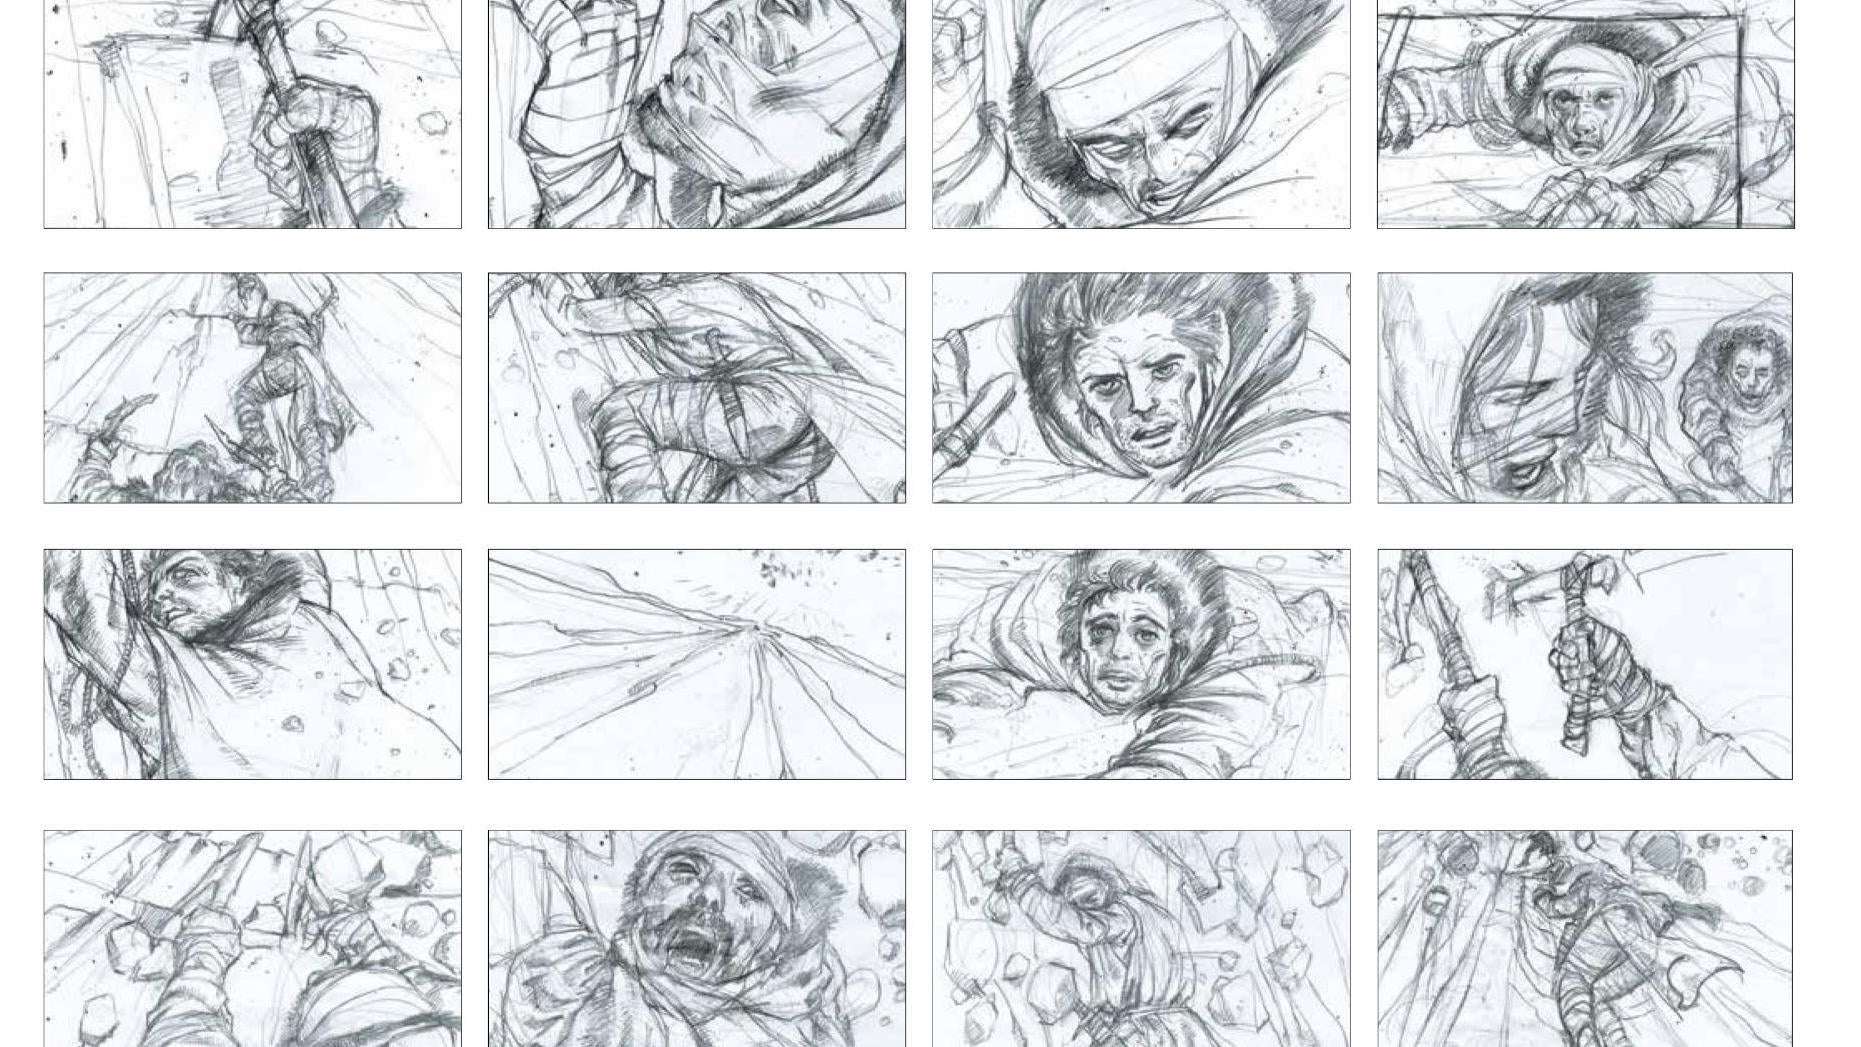 Exclusive: Watch Game Of Thrones' Ice Wall Climb Come To Life In Storyboard Form